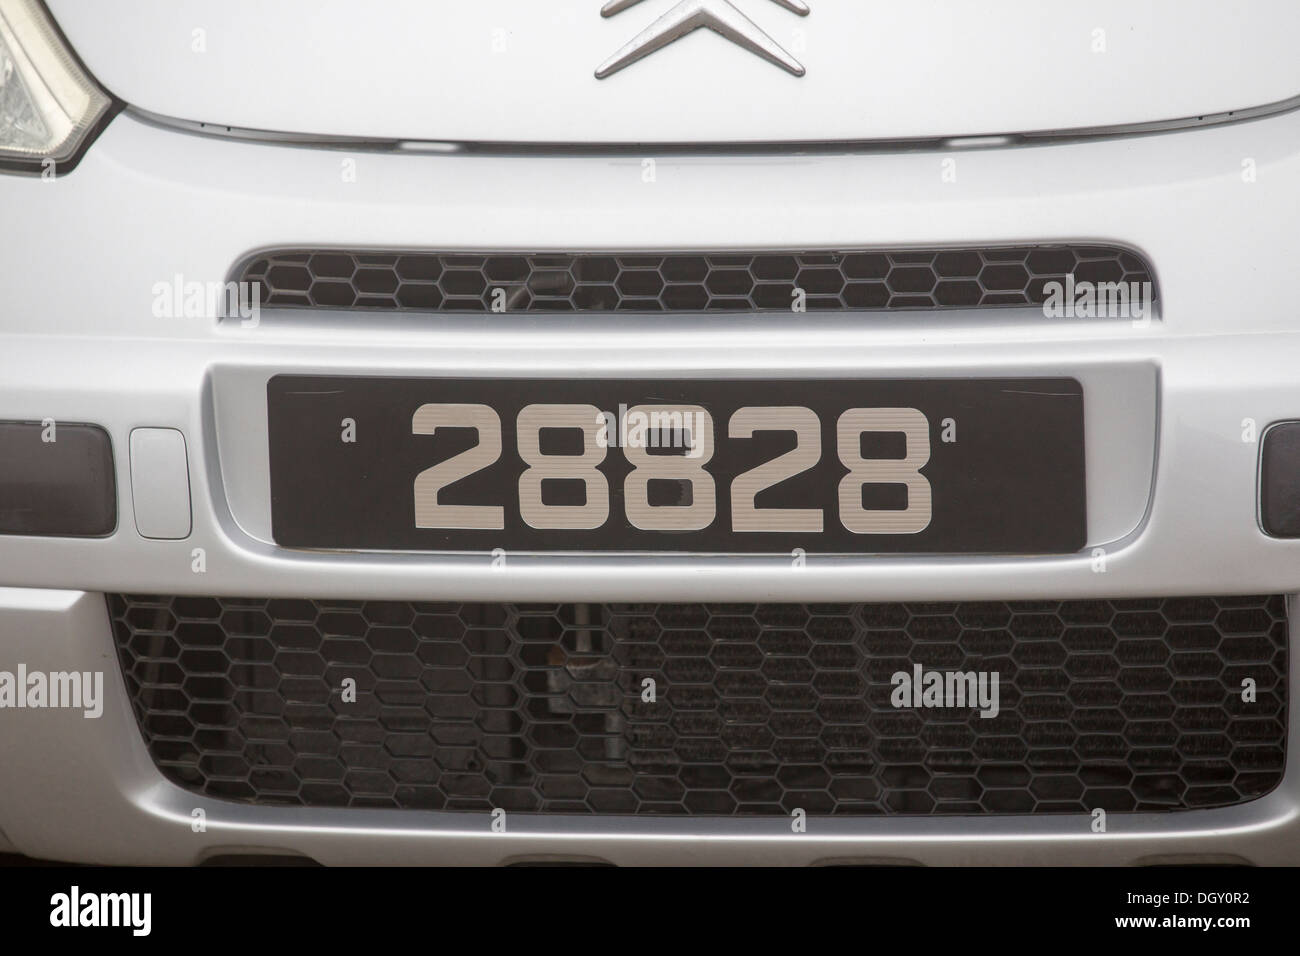 Guernsey car number plates Stock Photo, Royalty Free Image ...